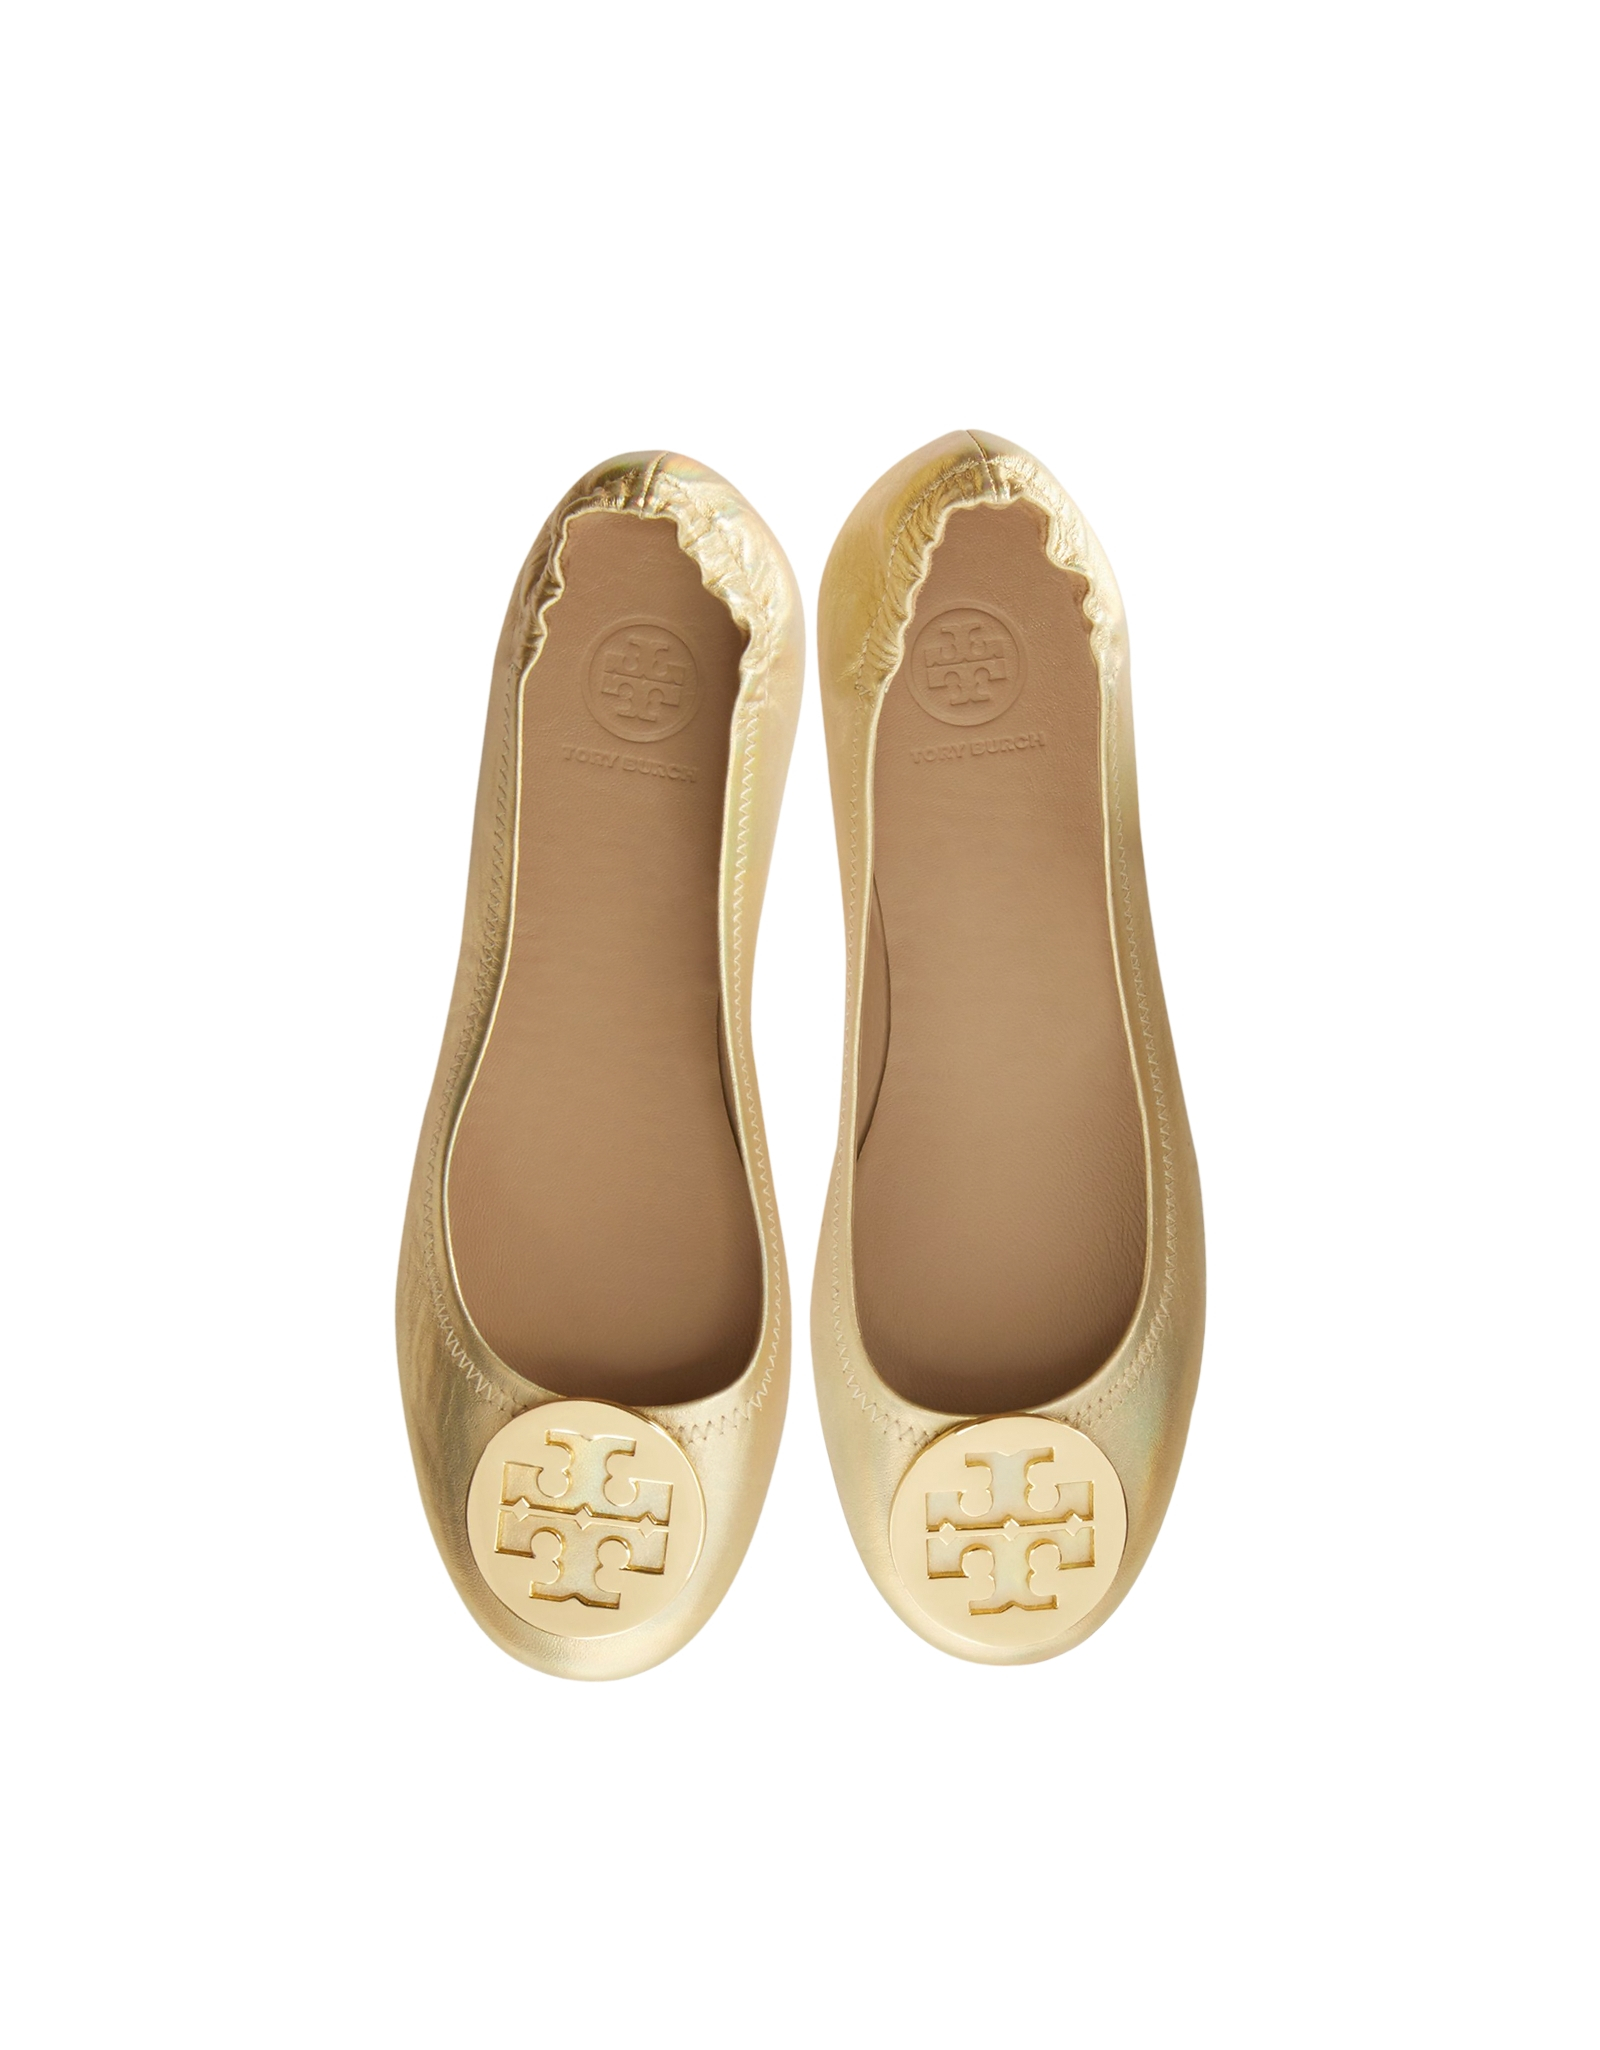 6346e63a4d1 ... reduced lyst tory burch minnie leather travel ballet flats in natural  1b82f 0f3ac